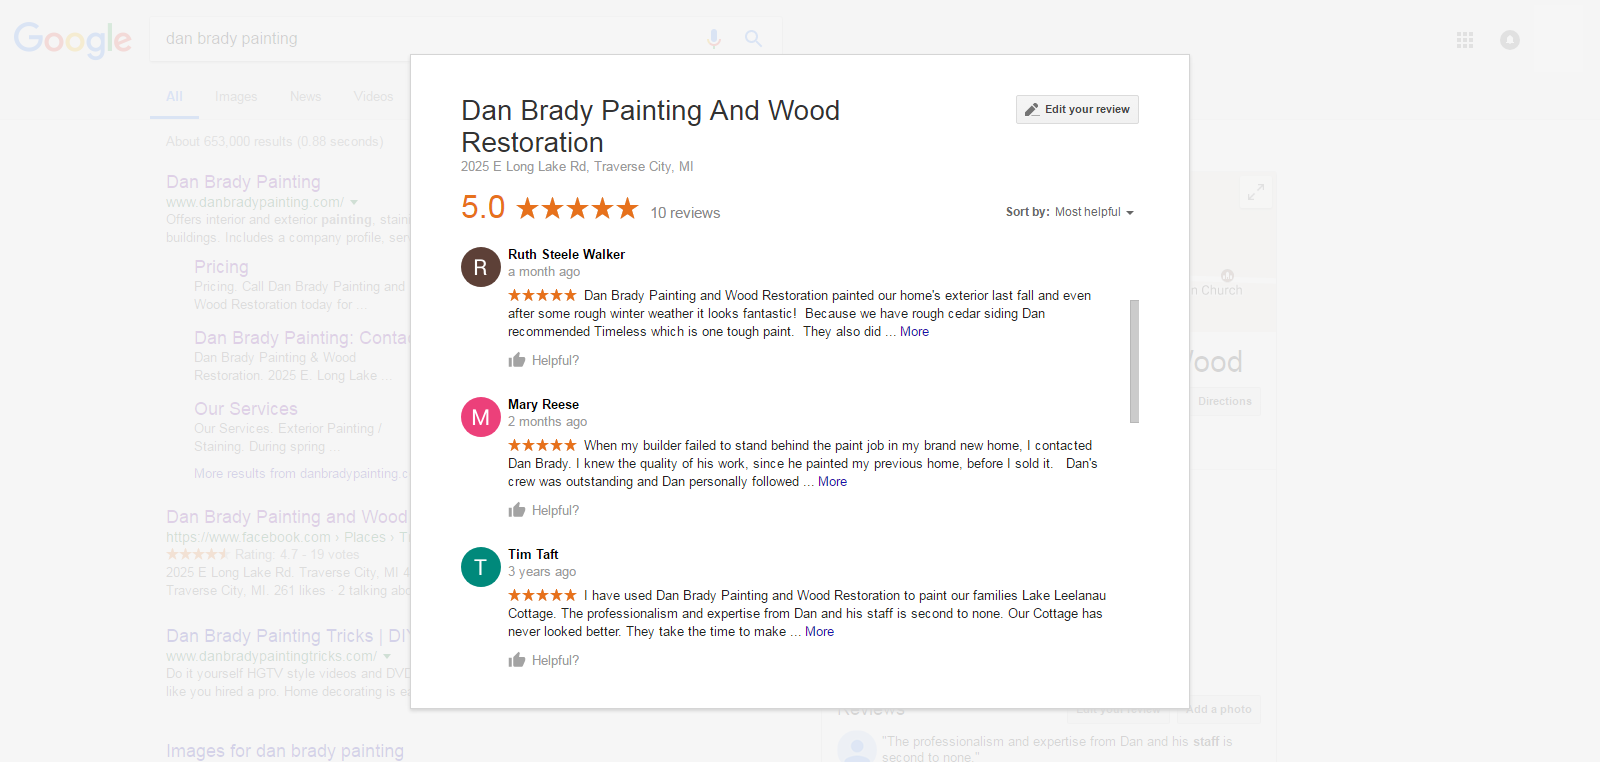 This image links to Google reviews of Dan Brady Painting & Wood Restoration in Traverse City.